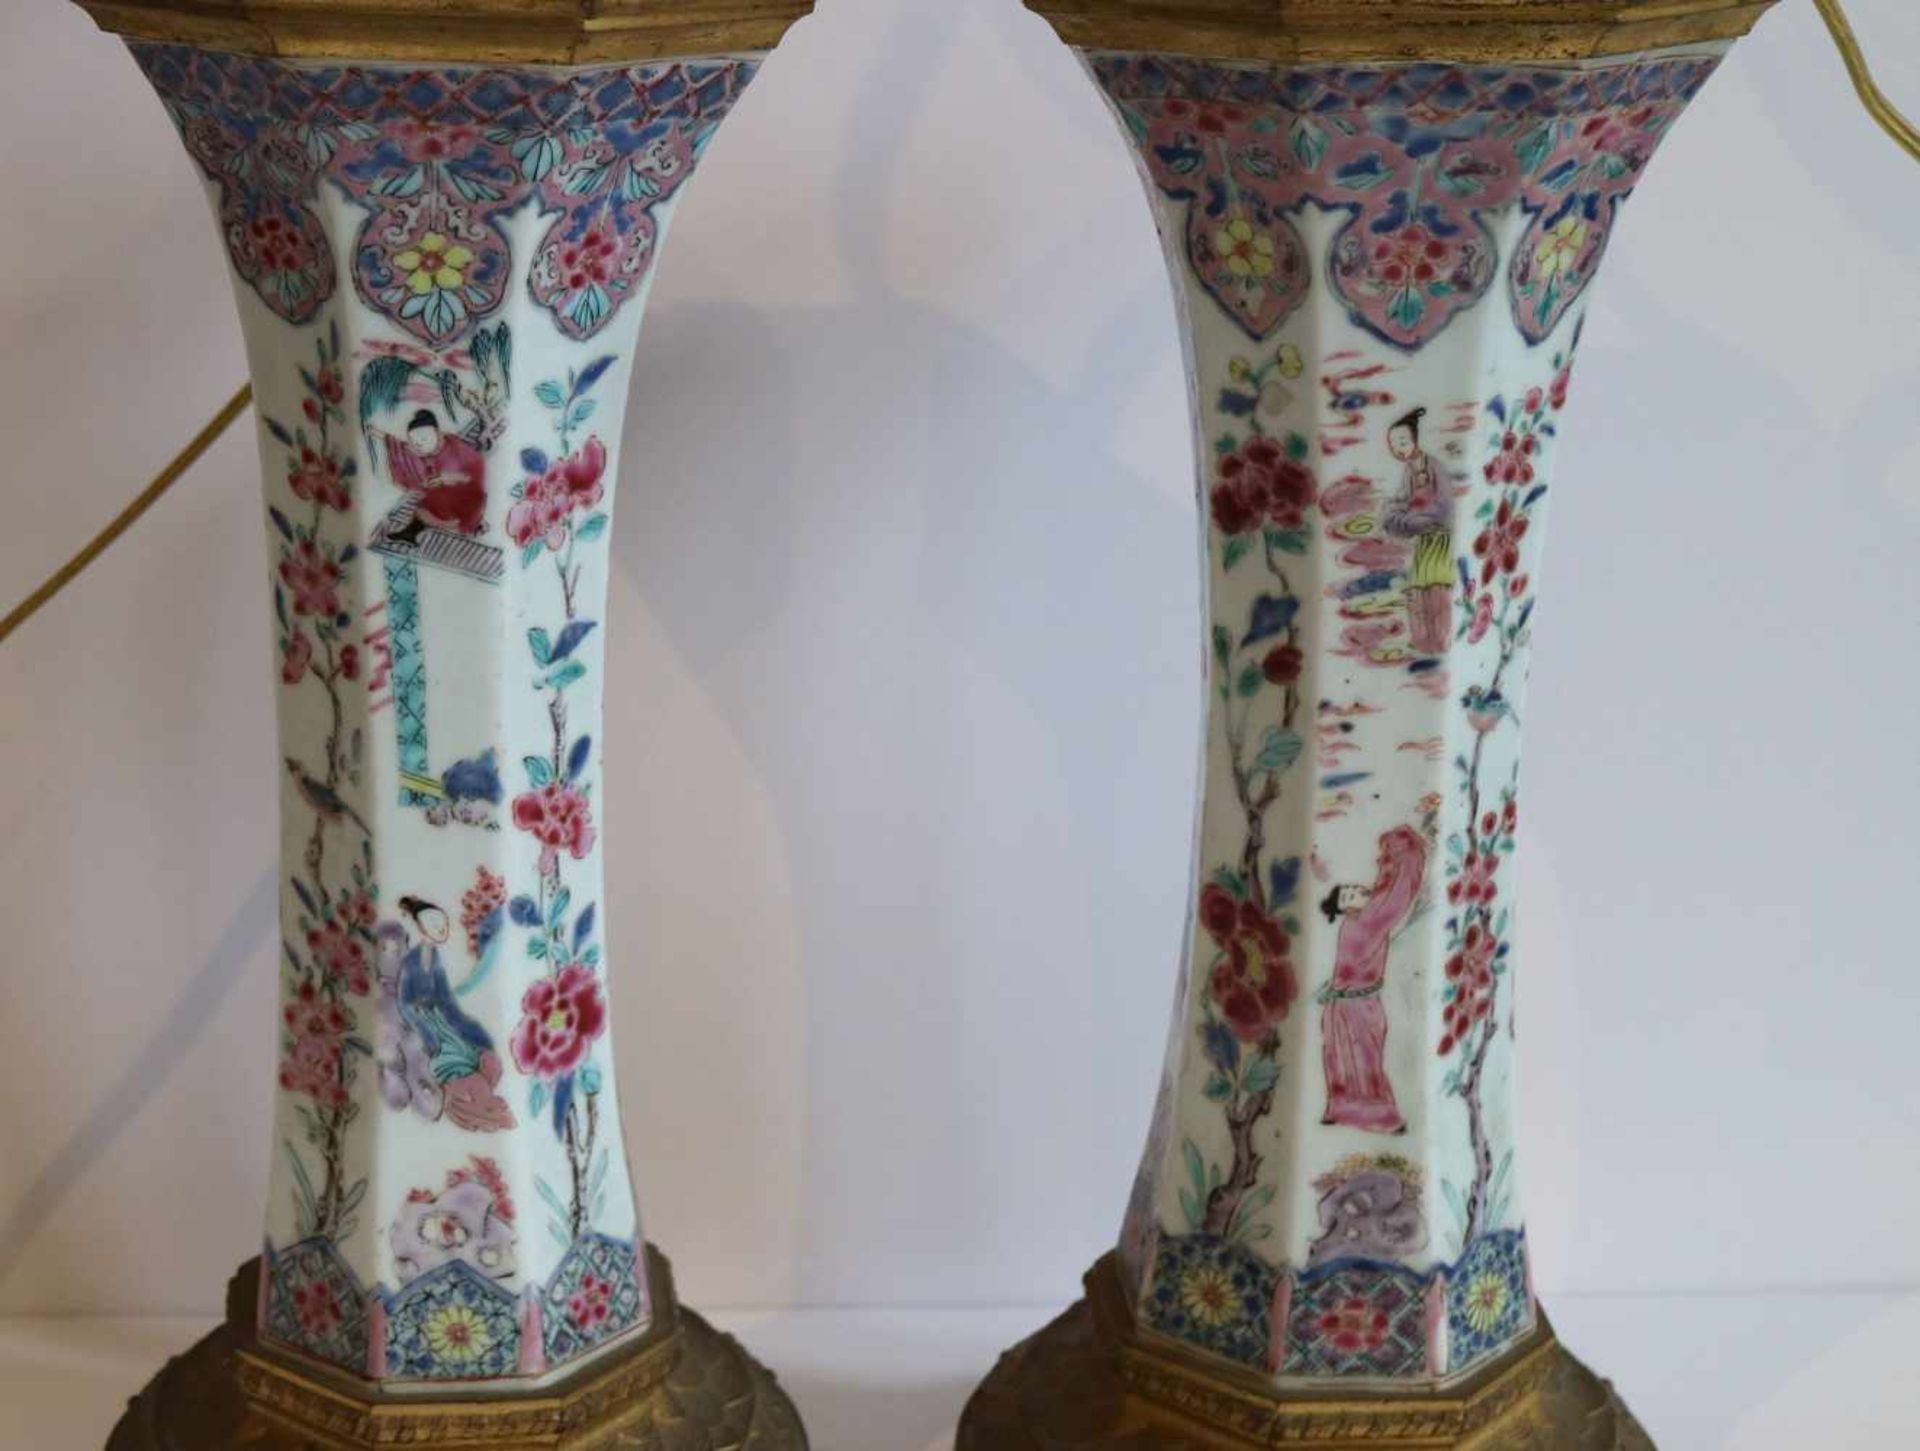 Los 343 - Chinese vases 19th century transformed into lampadaires, bronze fittings, famille rose H 71 cm